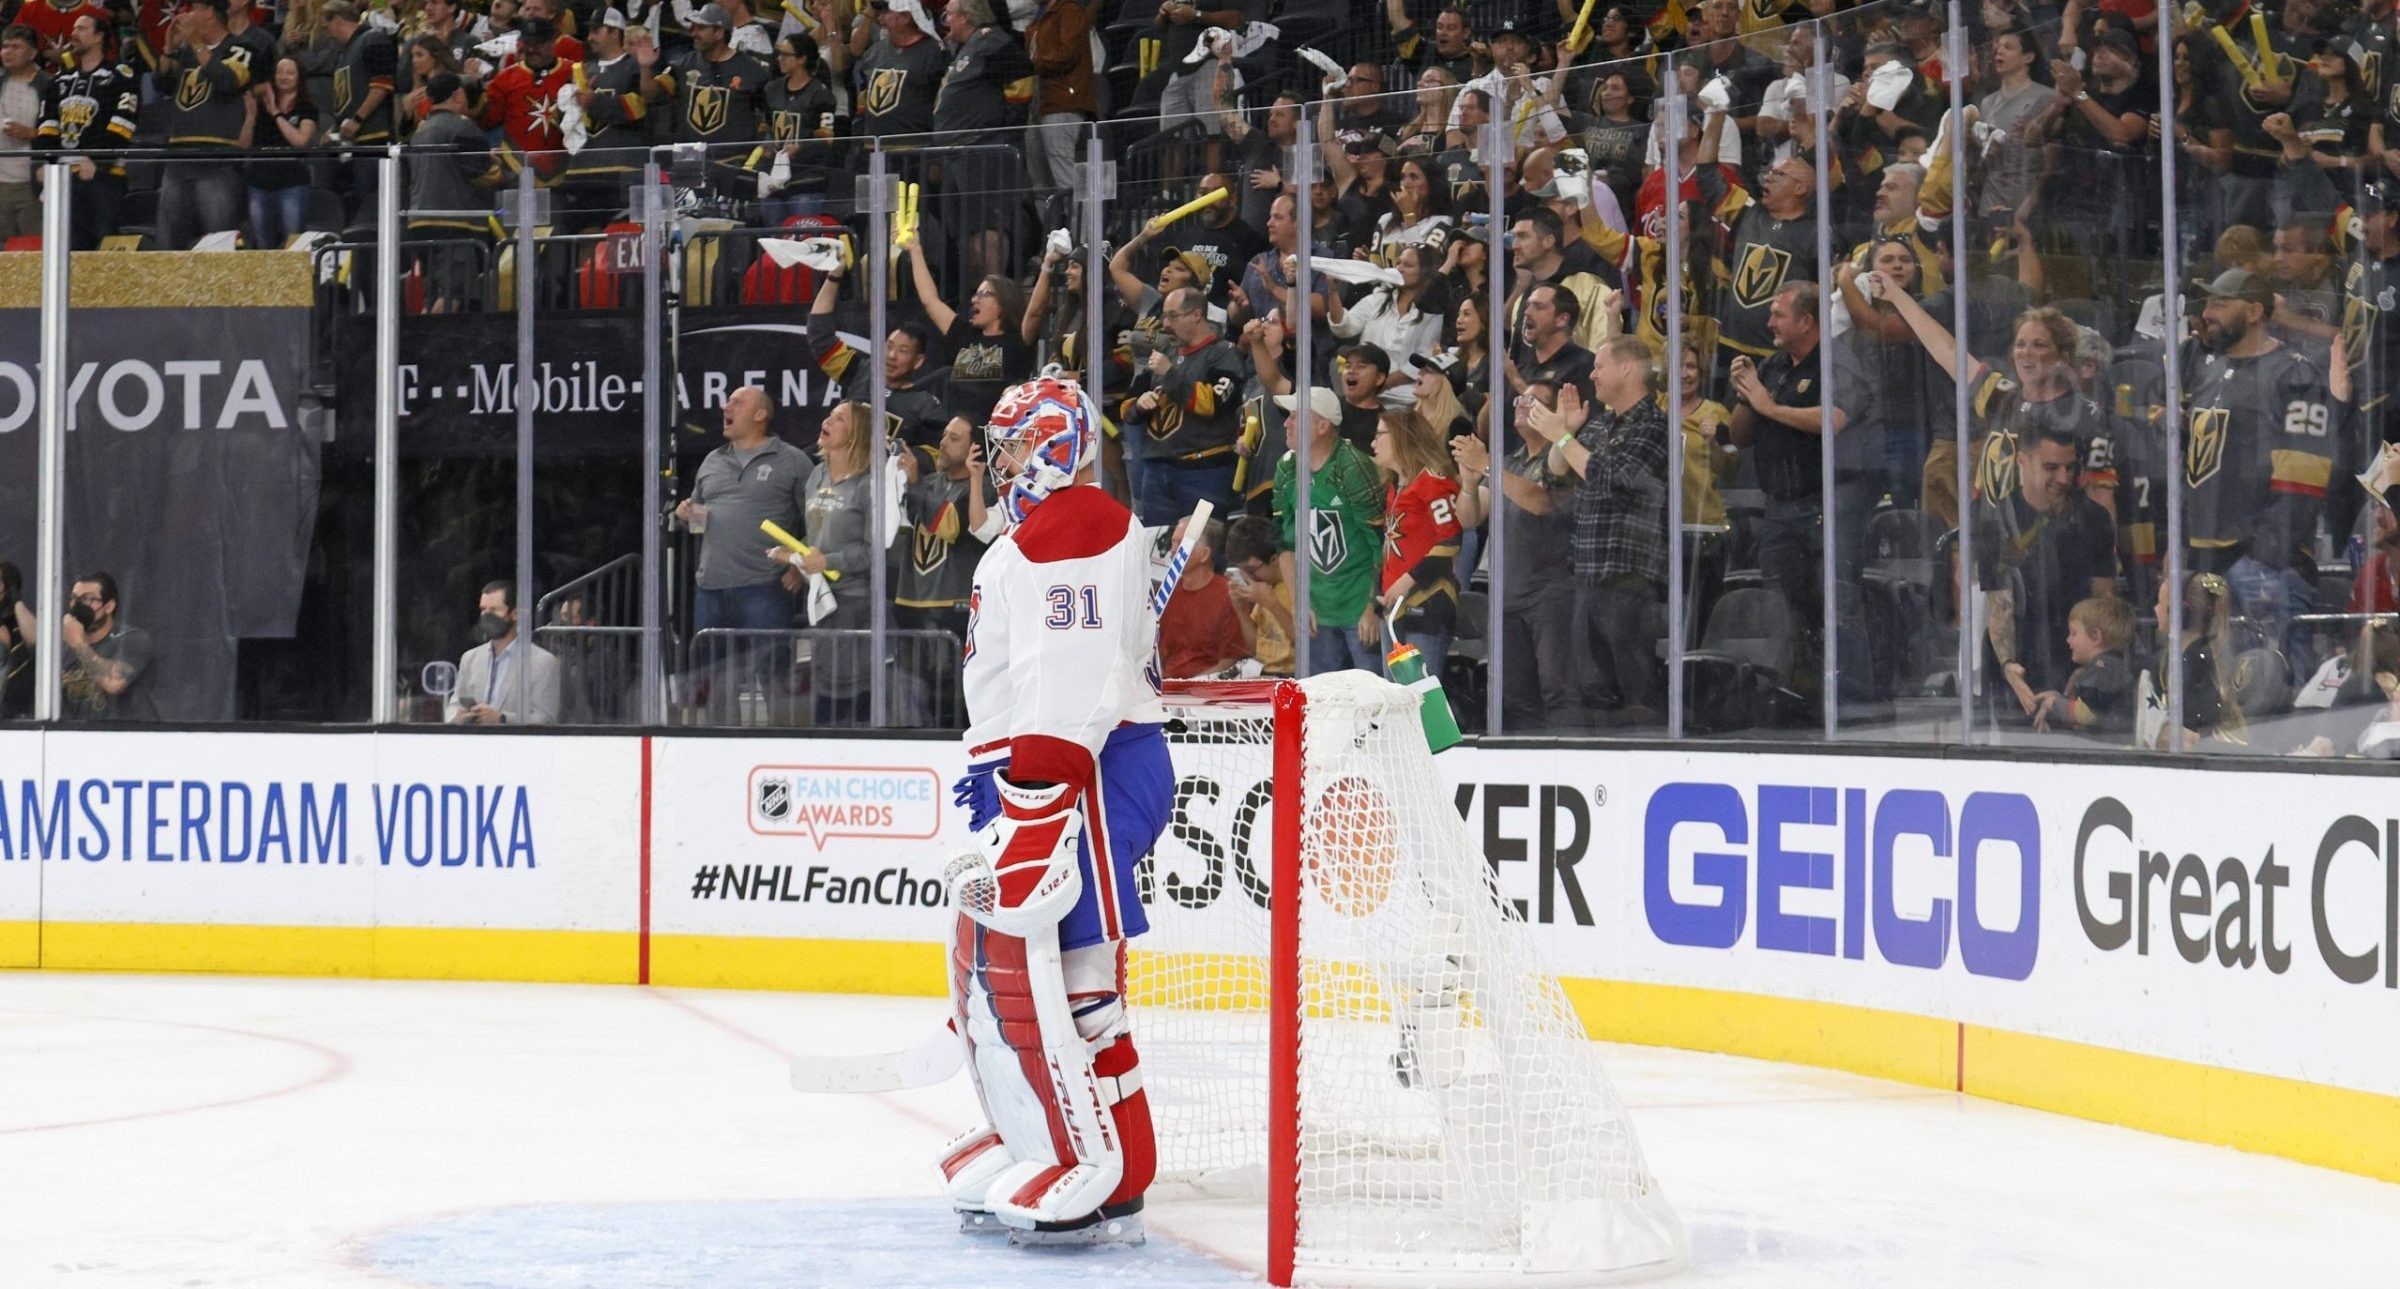 Carey Price stands in the crease